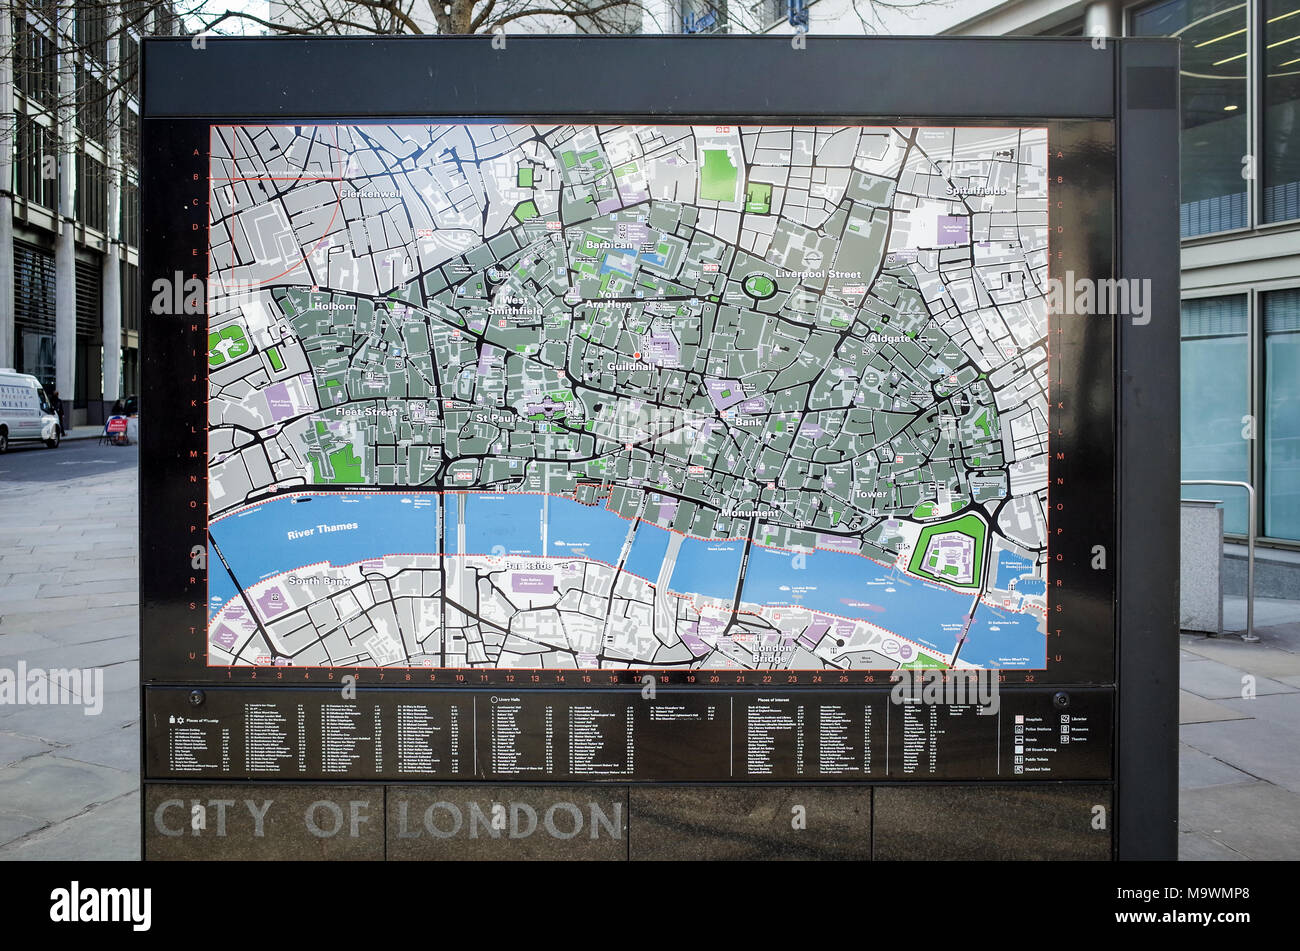 London Street Map Stock Photos & London Street Map Stock Images - Alamy